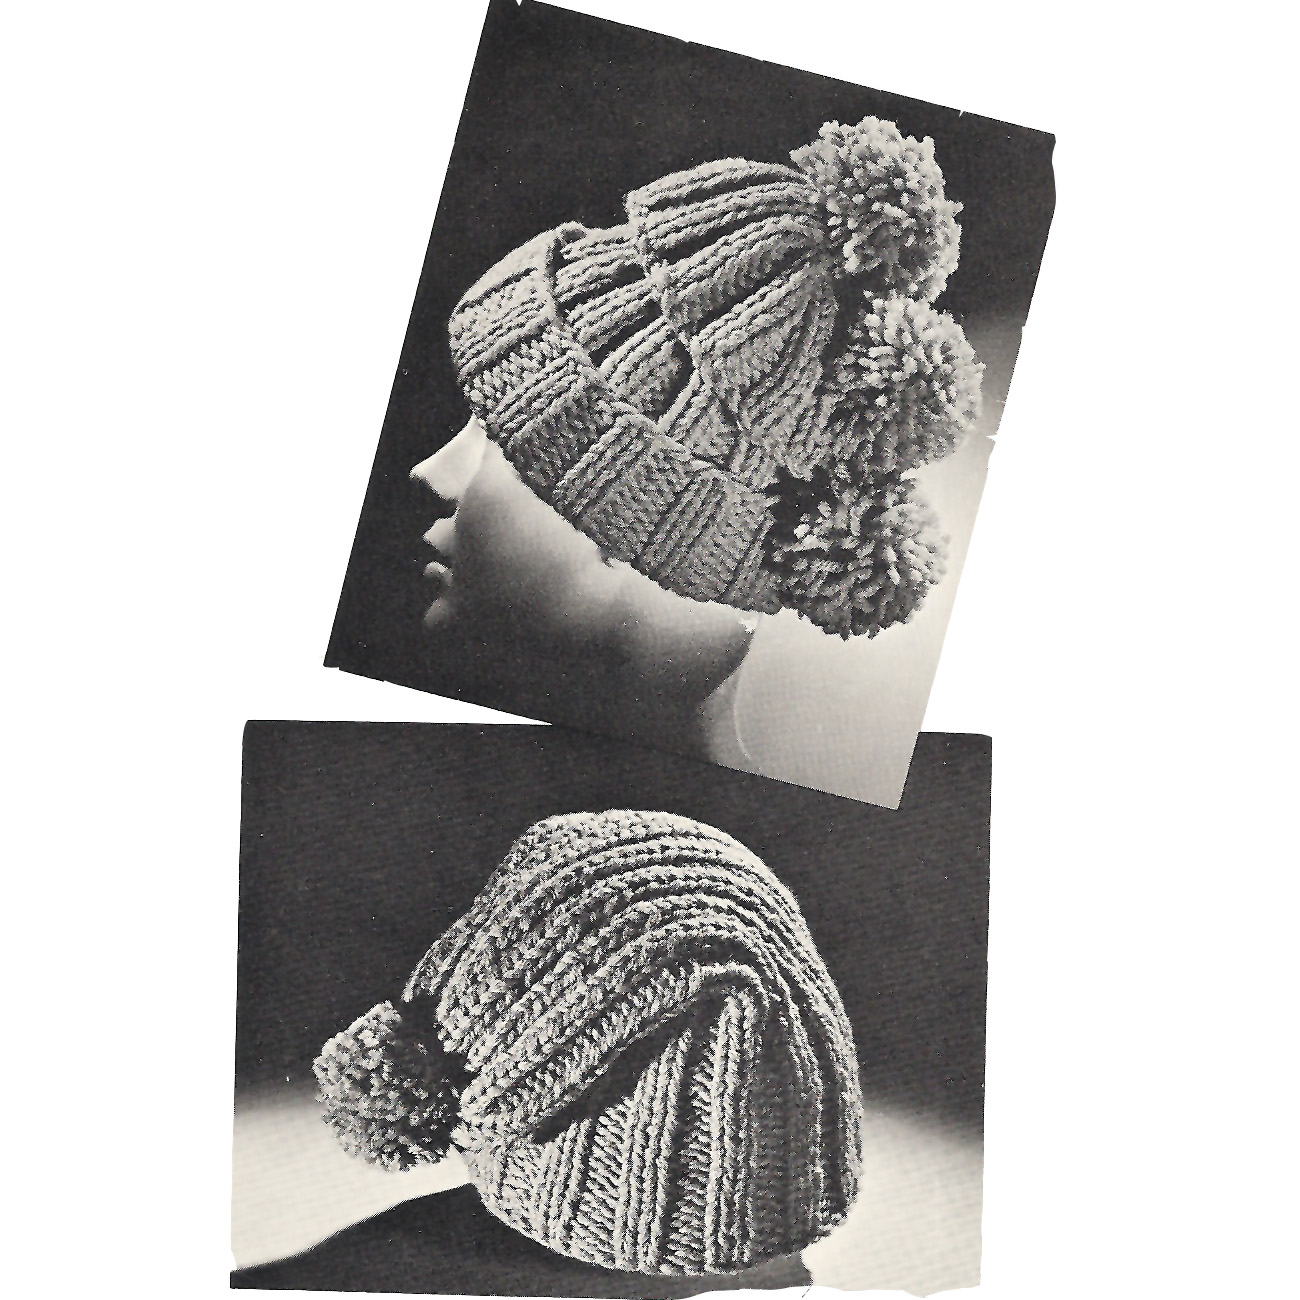 Vintage Knit Crochet Pattern Shop: Accessories to Knit Crochet, Coats Clarks ...